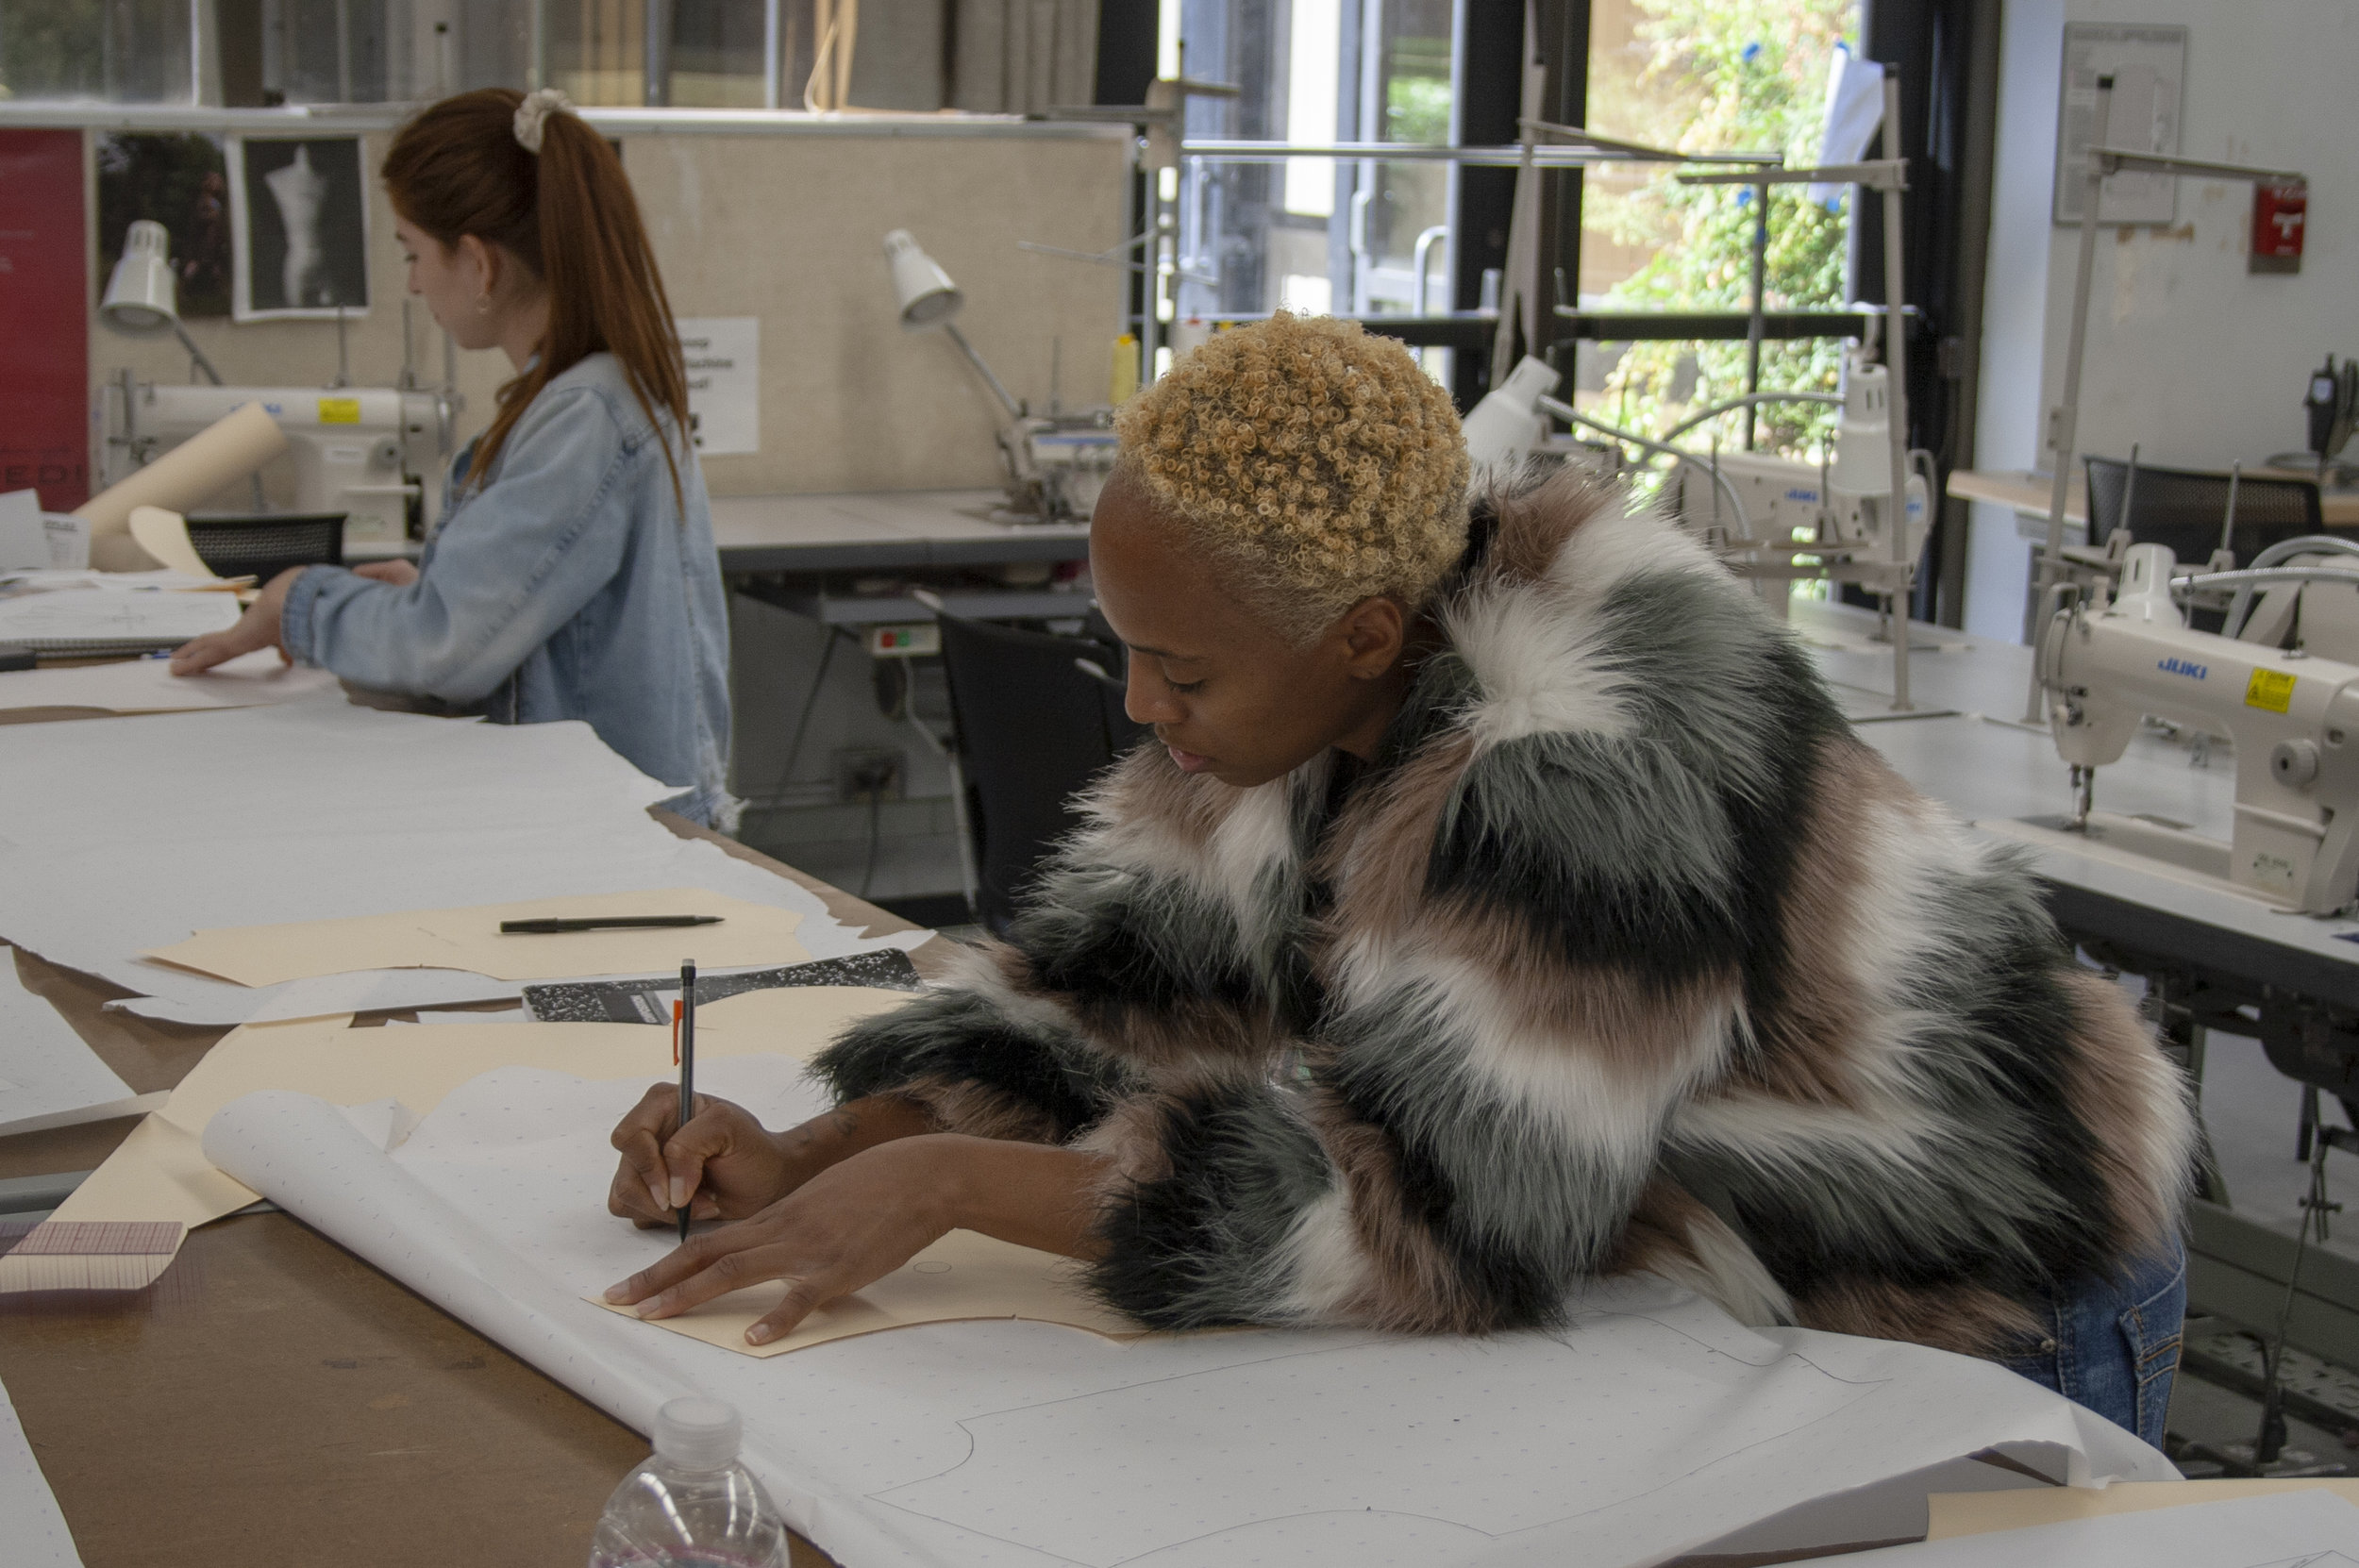 On Feburary 22, 2019 within the Fashion Department in Santa Monica College (SMC) where Porscha Woodard learns, and works on the basics of tracing.